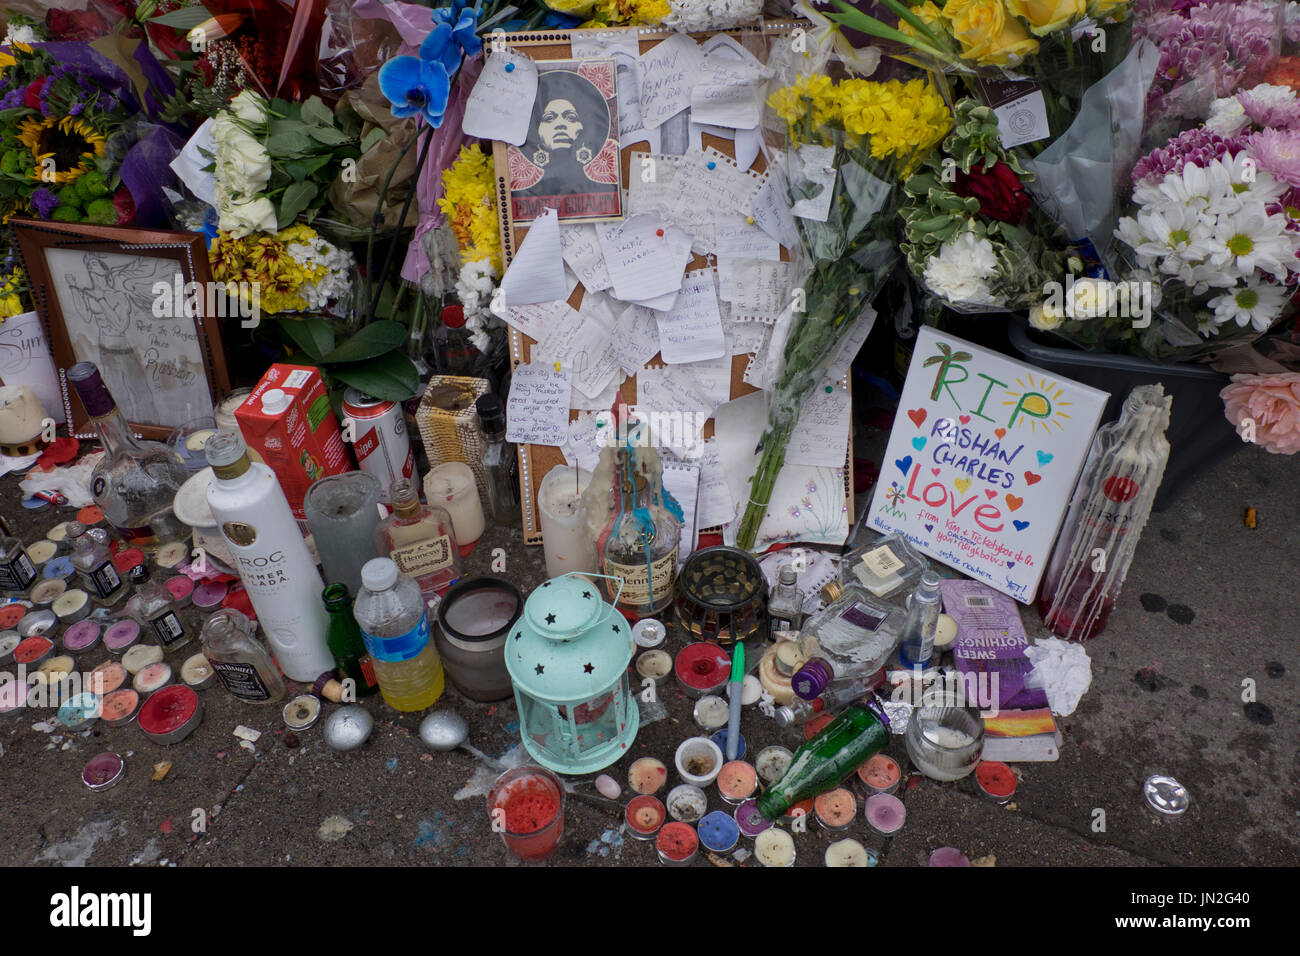 Flowers and messages of defiance outside shop where Rashan Charles, a 20-year-old black man died after being apprehended by police in east London - Stock Image